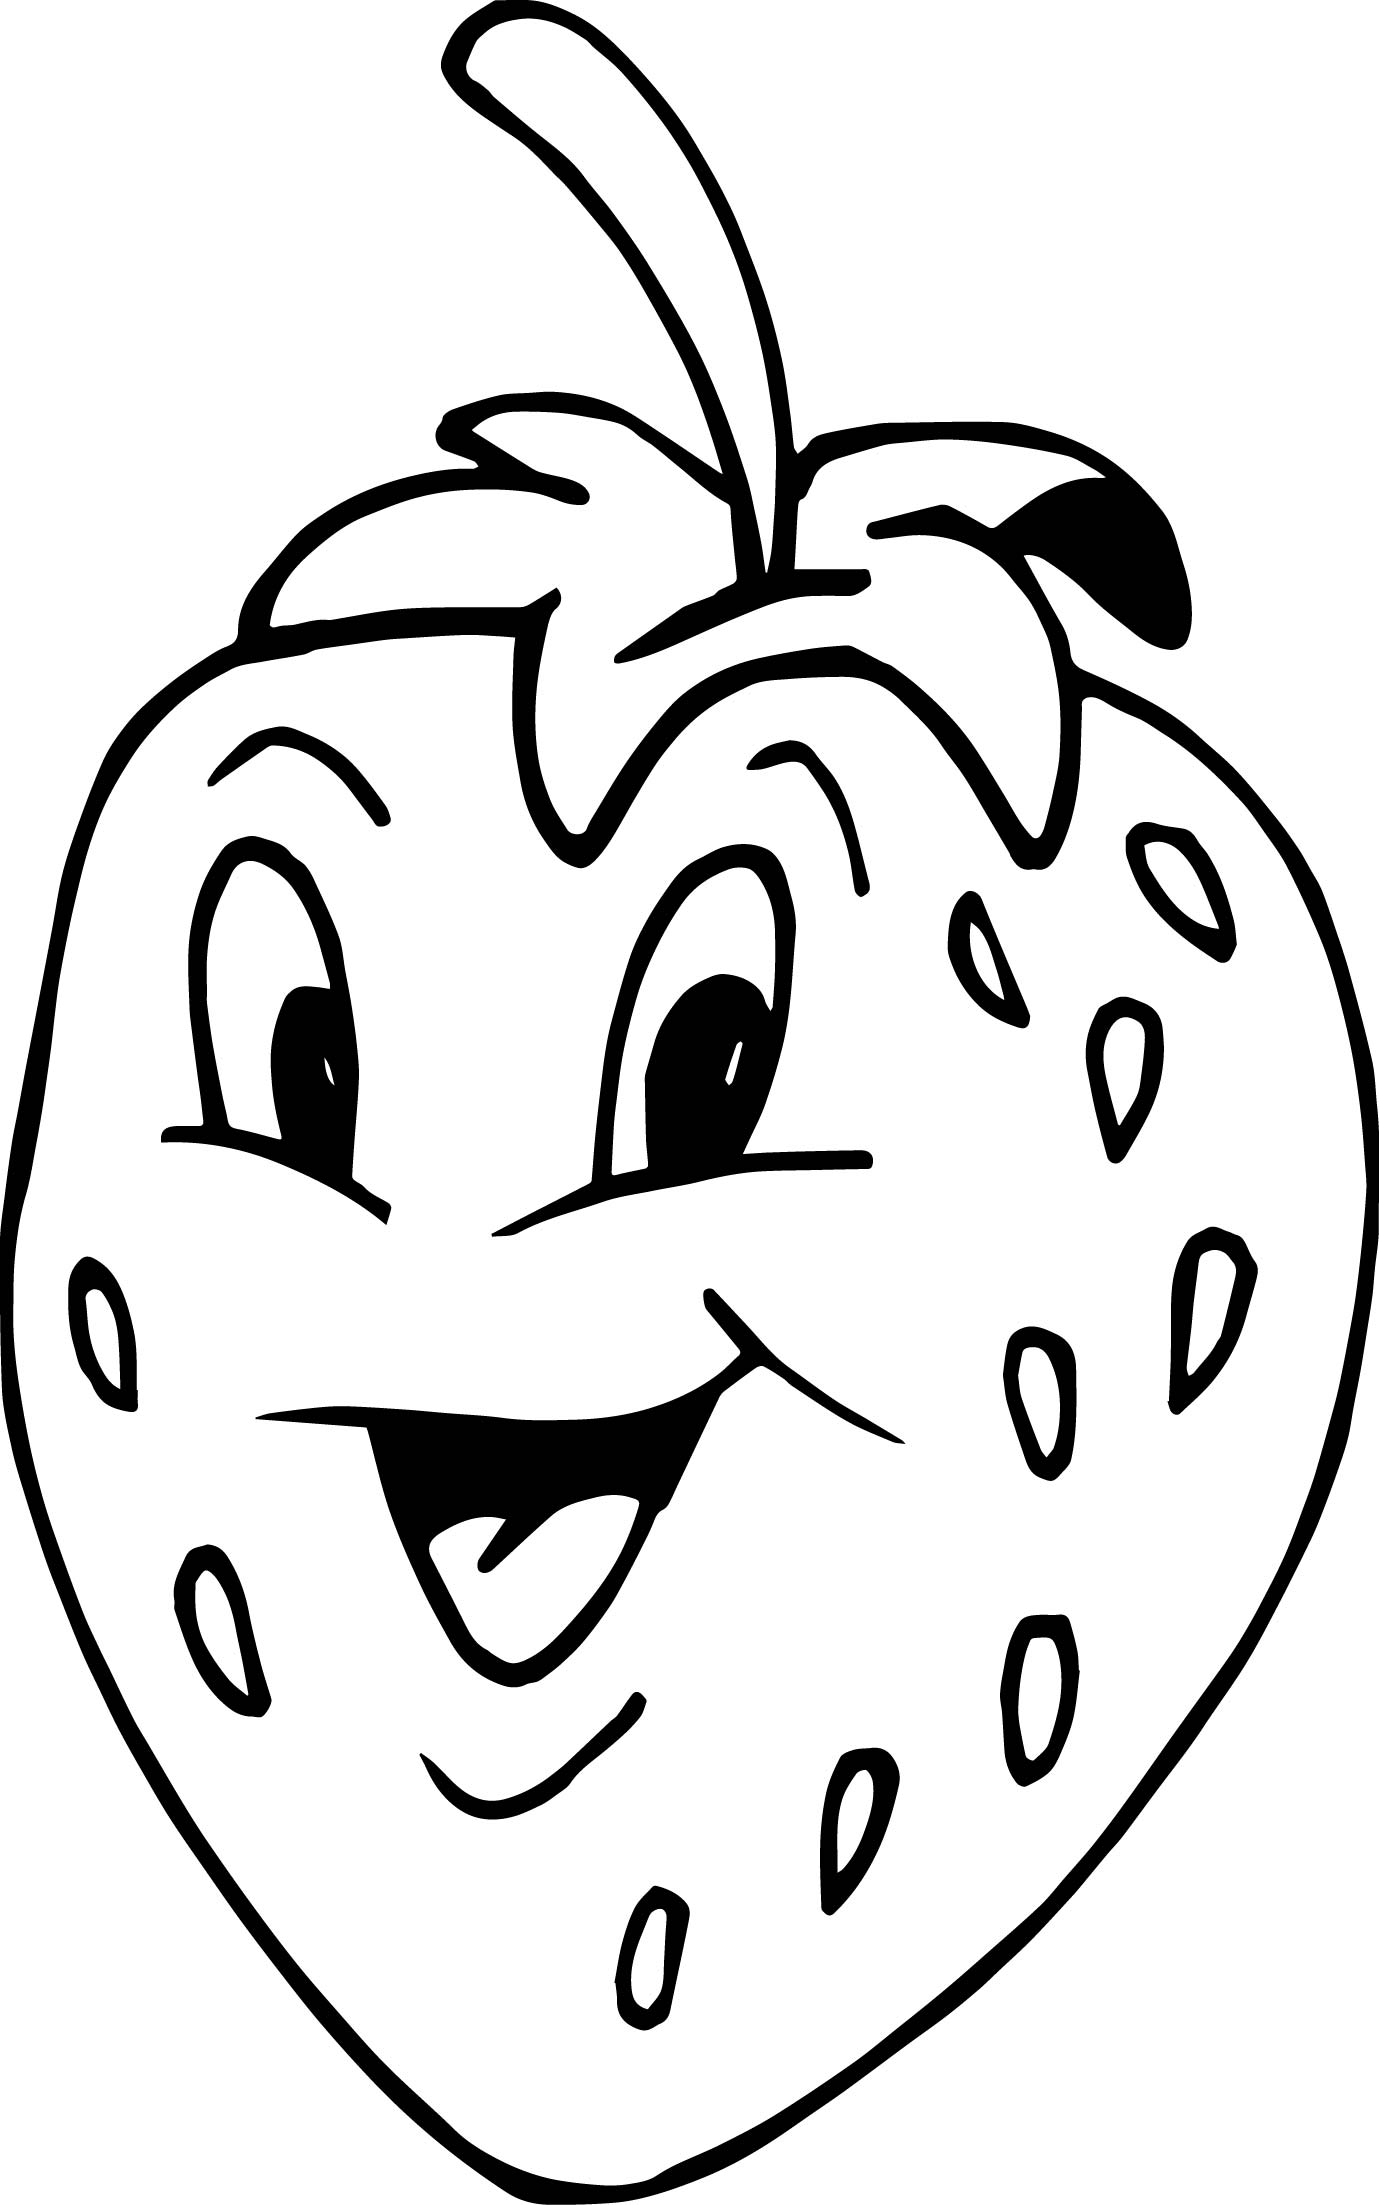 Cartoon Apple Coloring Pages : Strawberry cartoon smiling coloring page apple